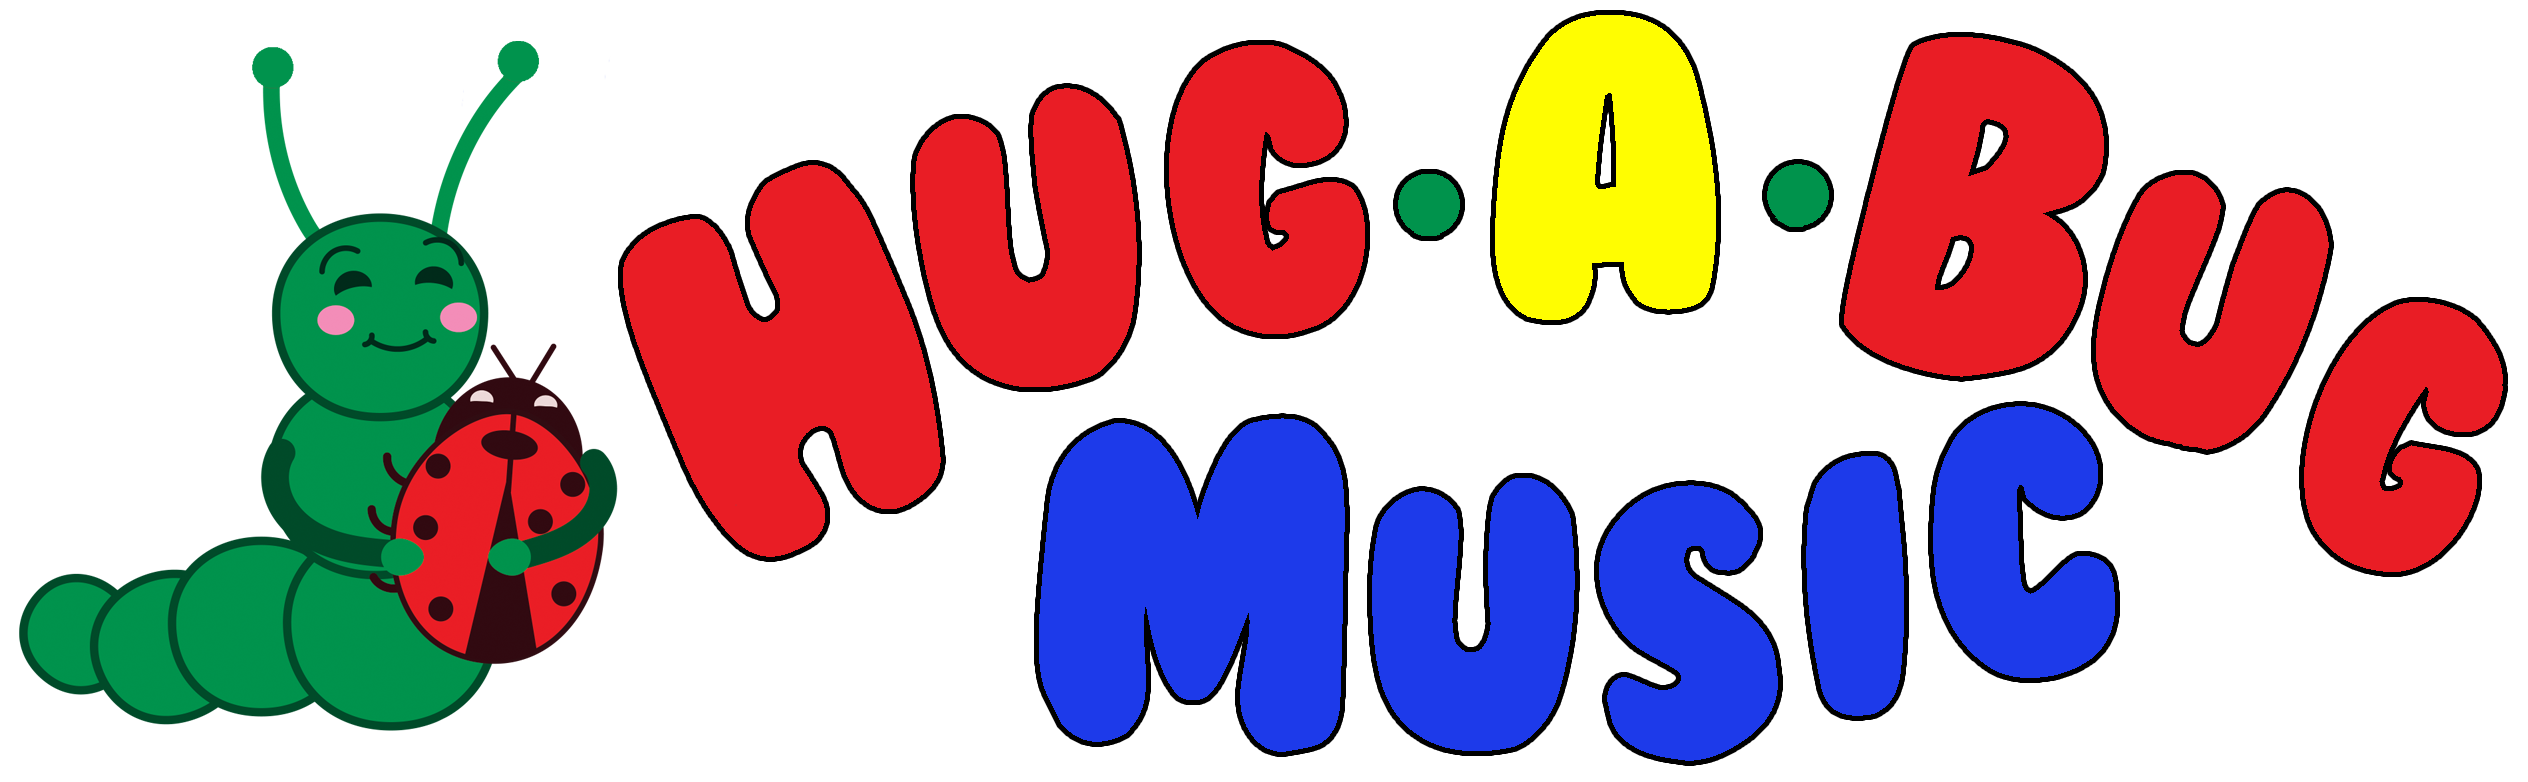 Hug-A-Bug Music